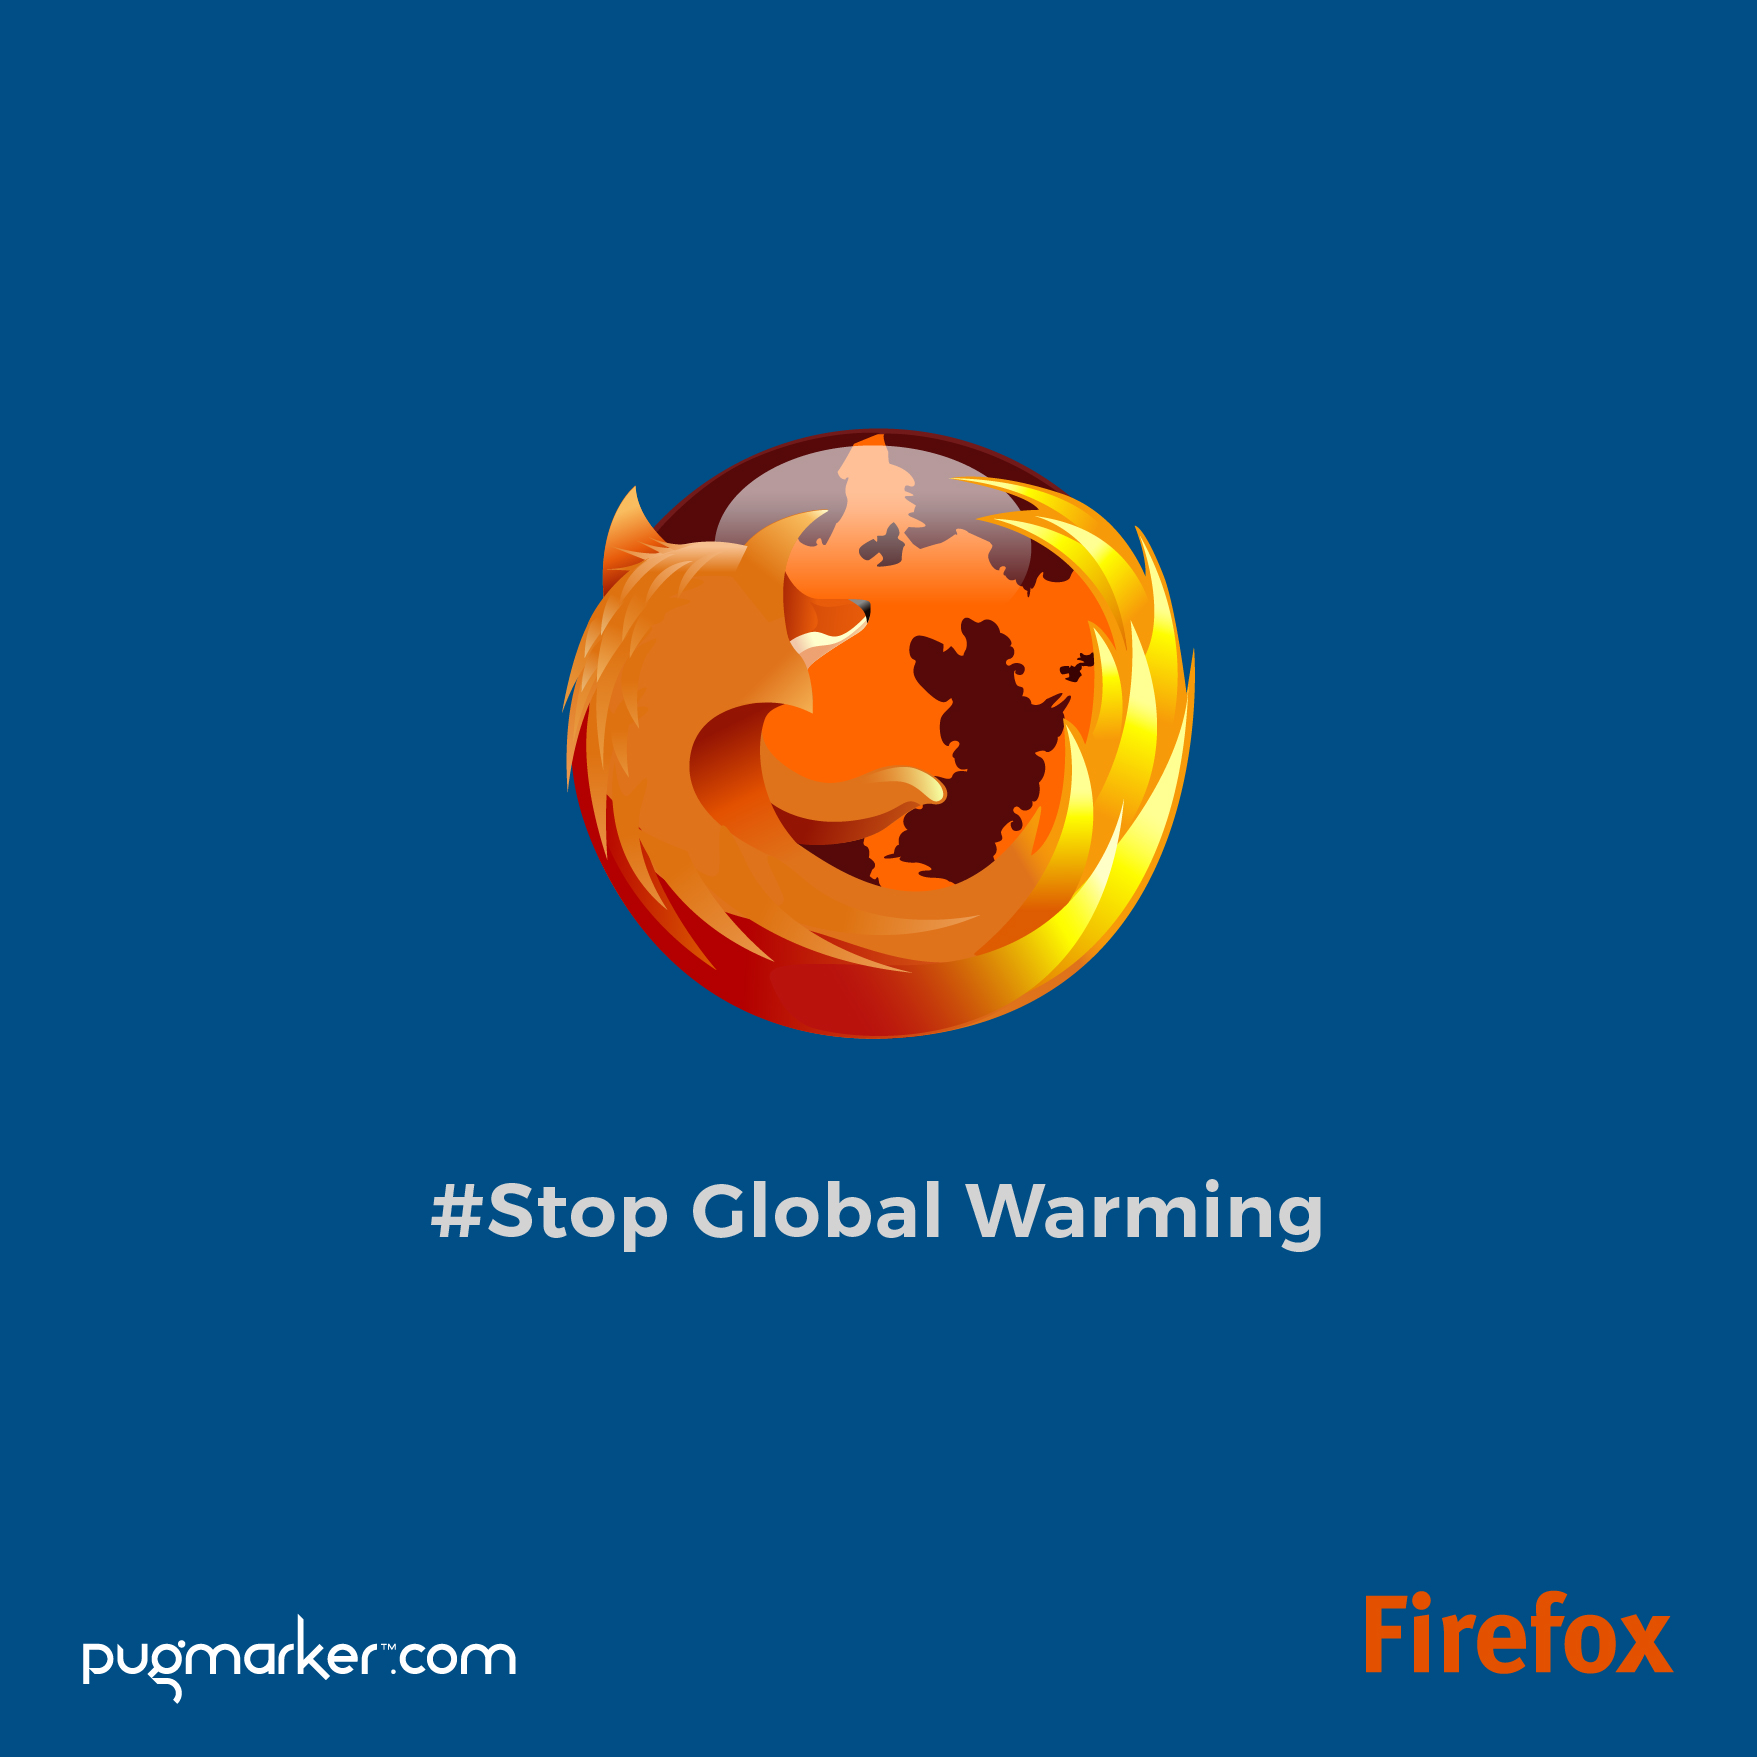 Firefox - Stop Global Warming